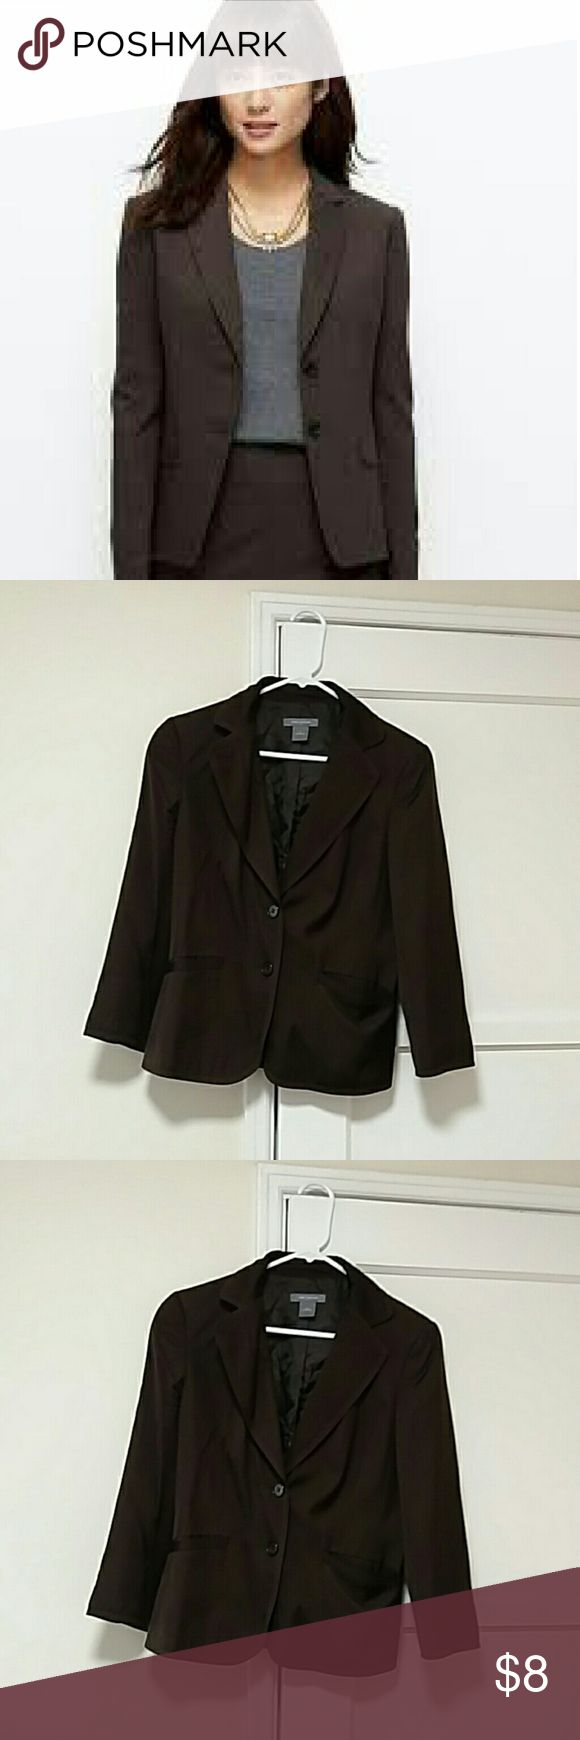 ANN TAYLOR Women suit jacket good condition Ann Taylor Jackets & Coats